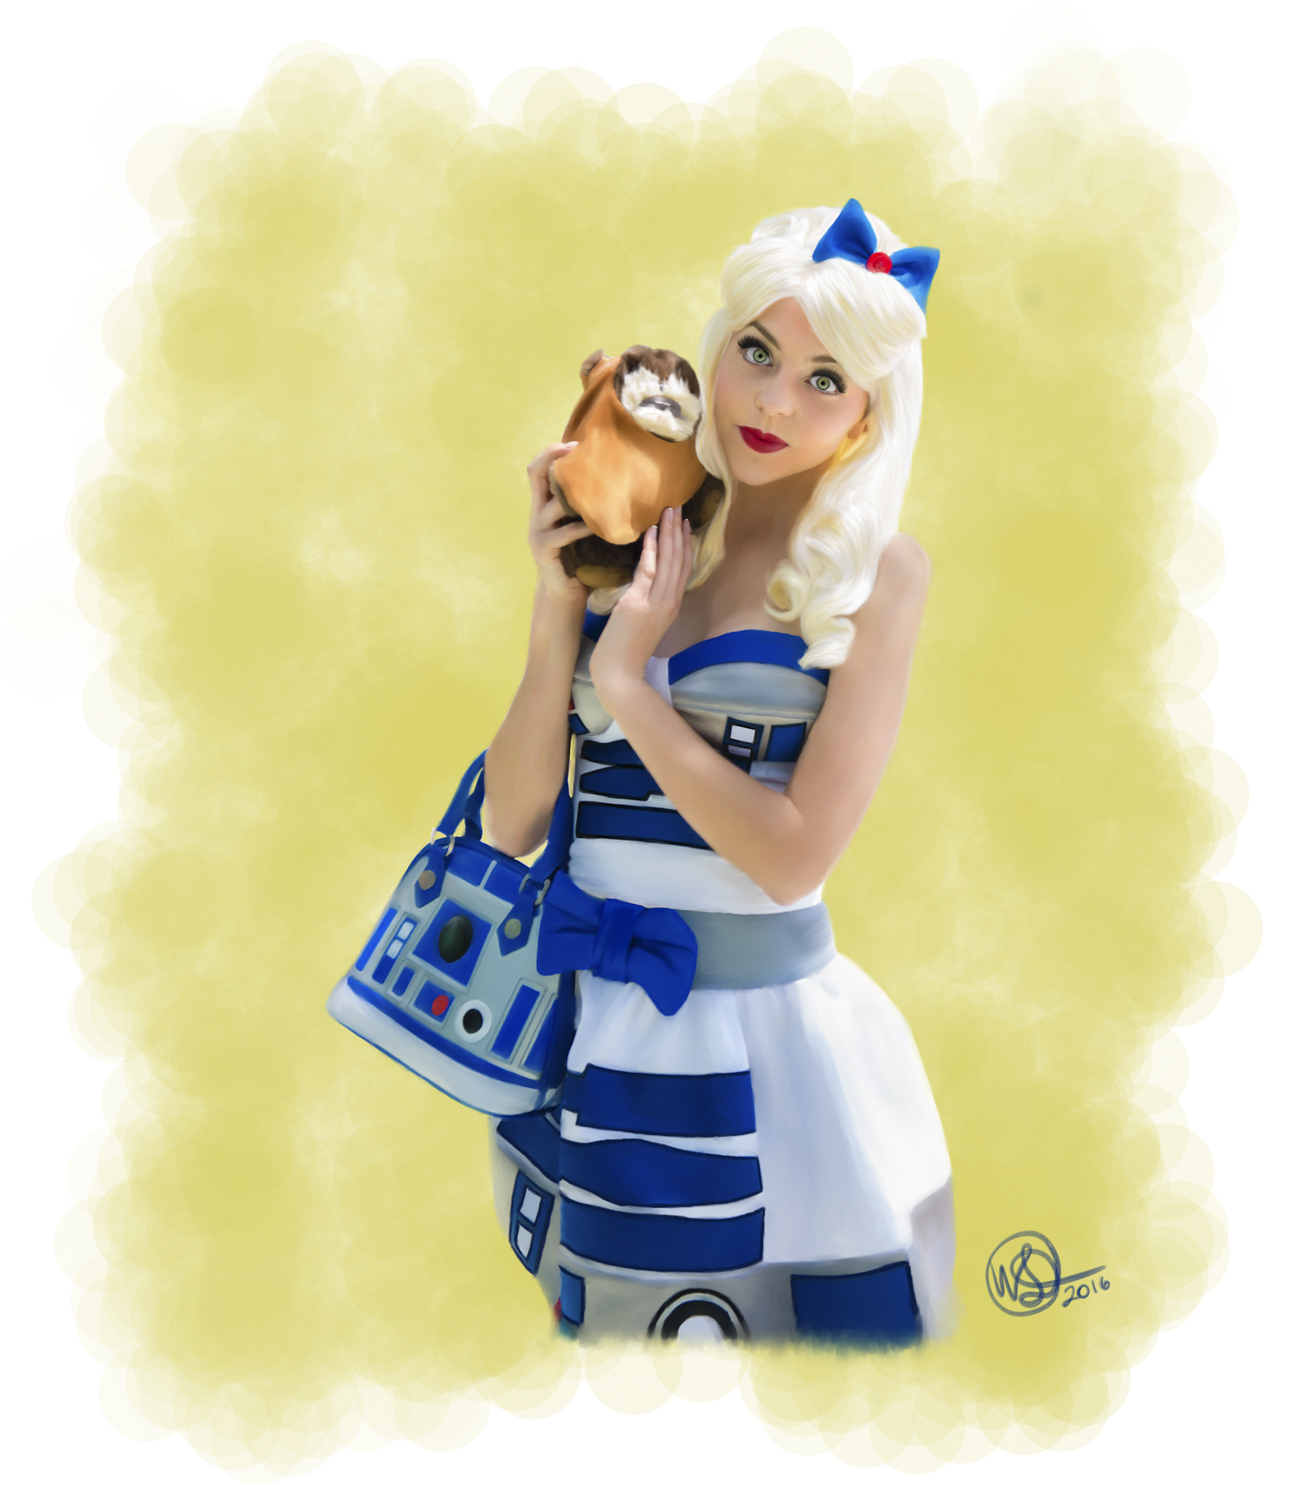 R2 Painting - Complete_Screen